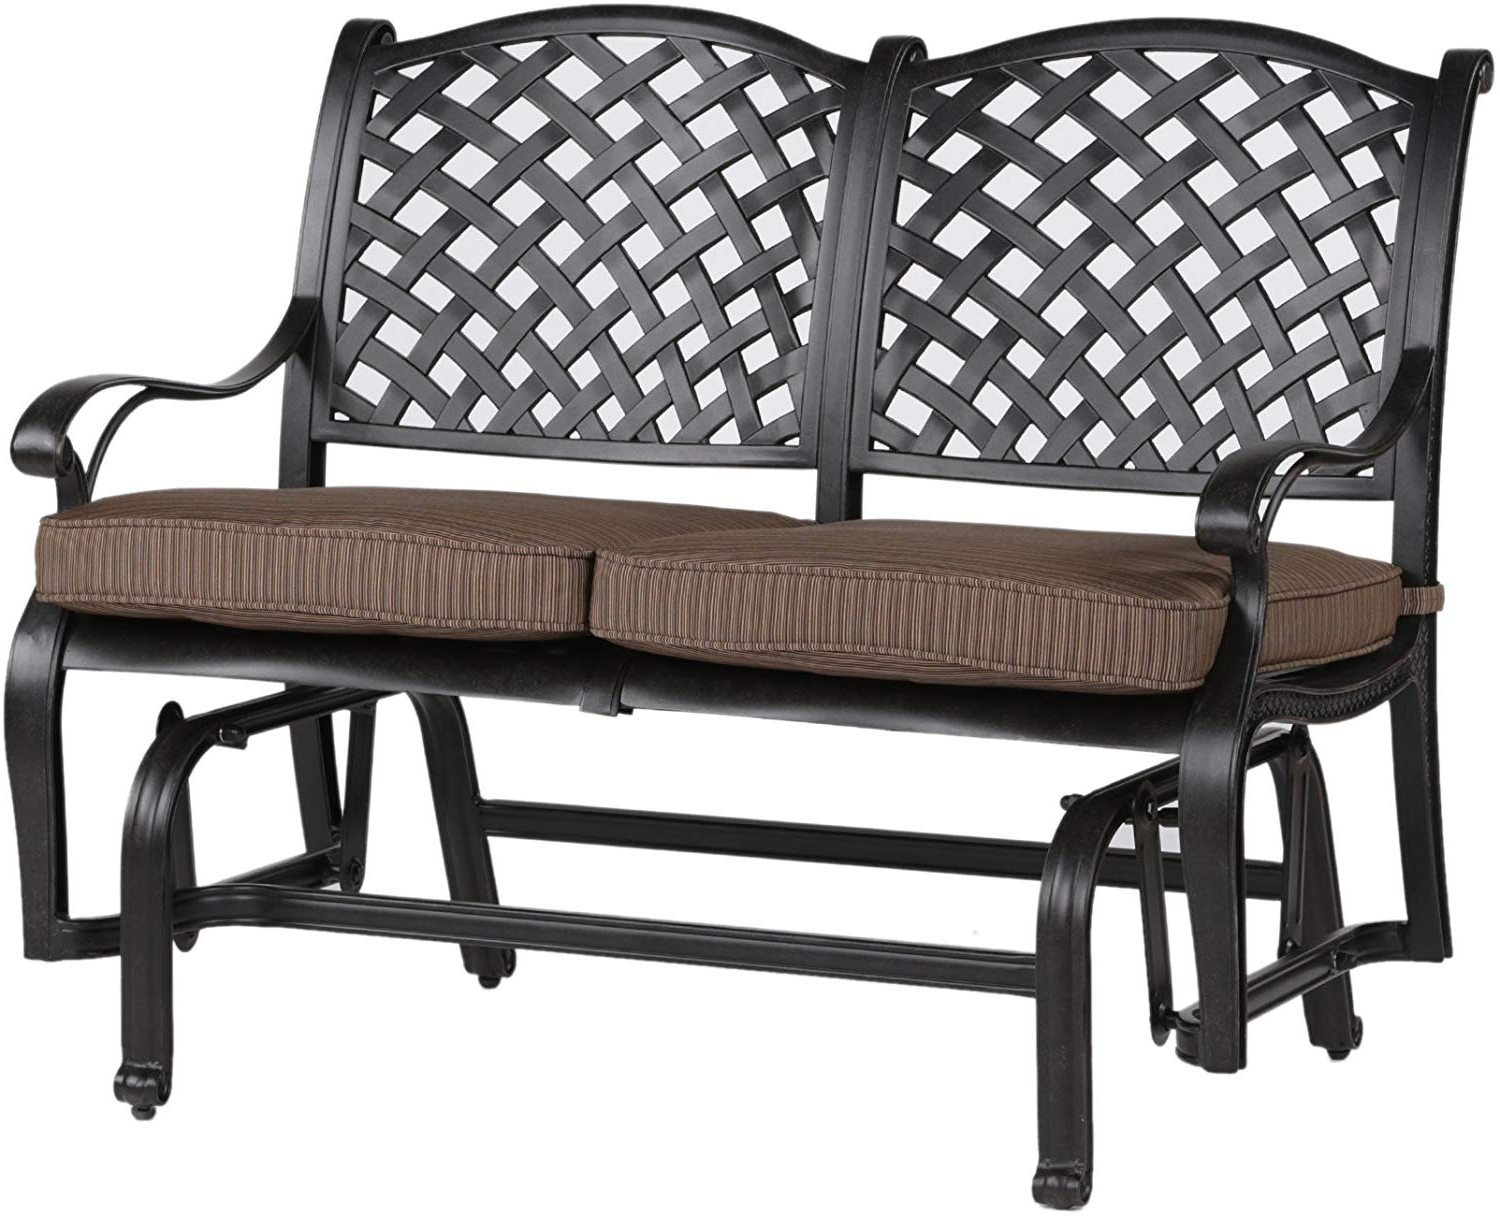 Most Recent Glider Benches With Cushion Intended For Ipatio Sparta Bench Glider With Cushion – Outdoor Metal Glider (View 26 of 30)